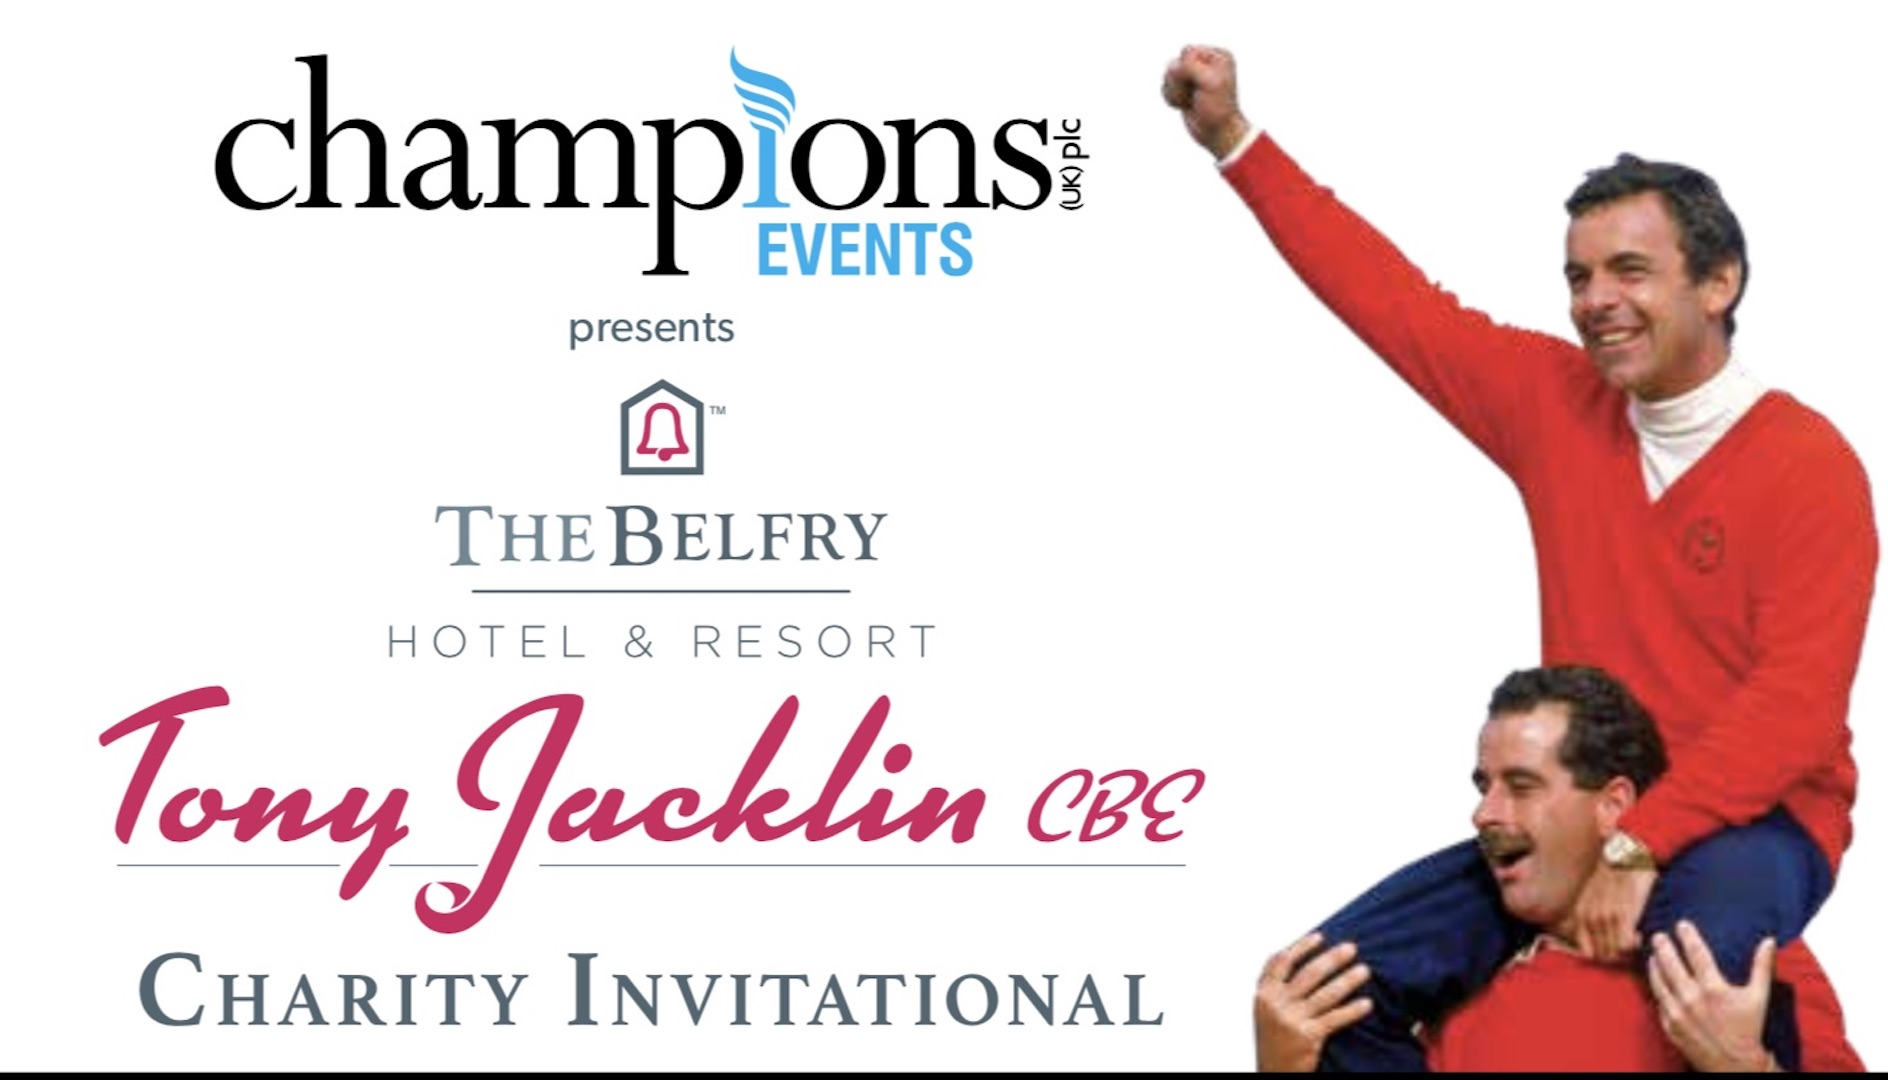 The Belfry welcomes back legendary Ryder Cup captain Tony Jacklin